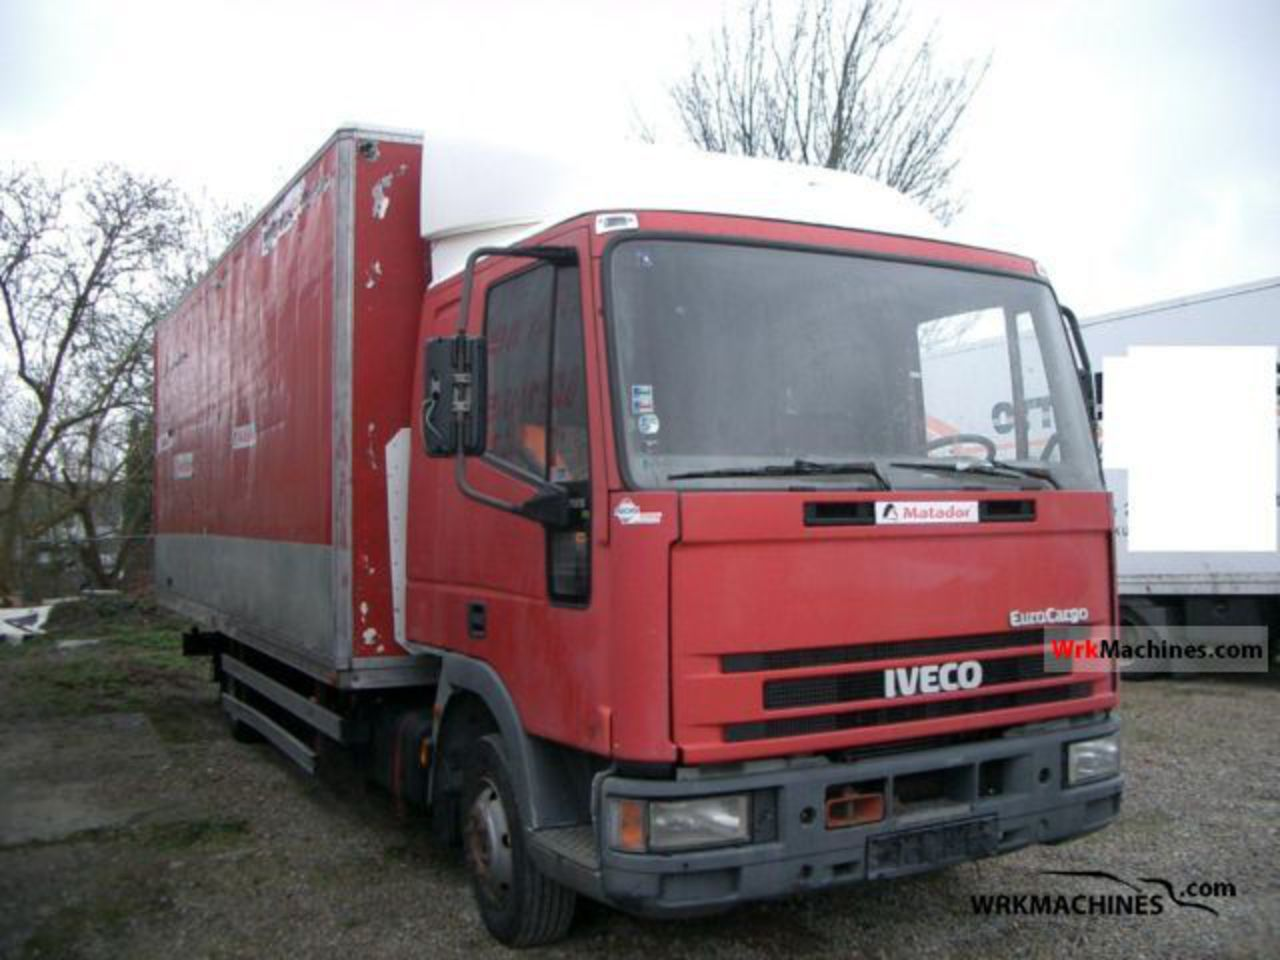 Iveco 75E15 EuroCargo. View Download Wallpaper. 640x480. Comments